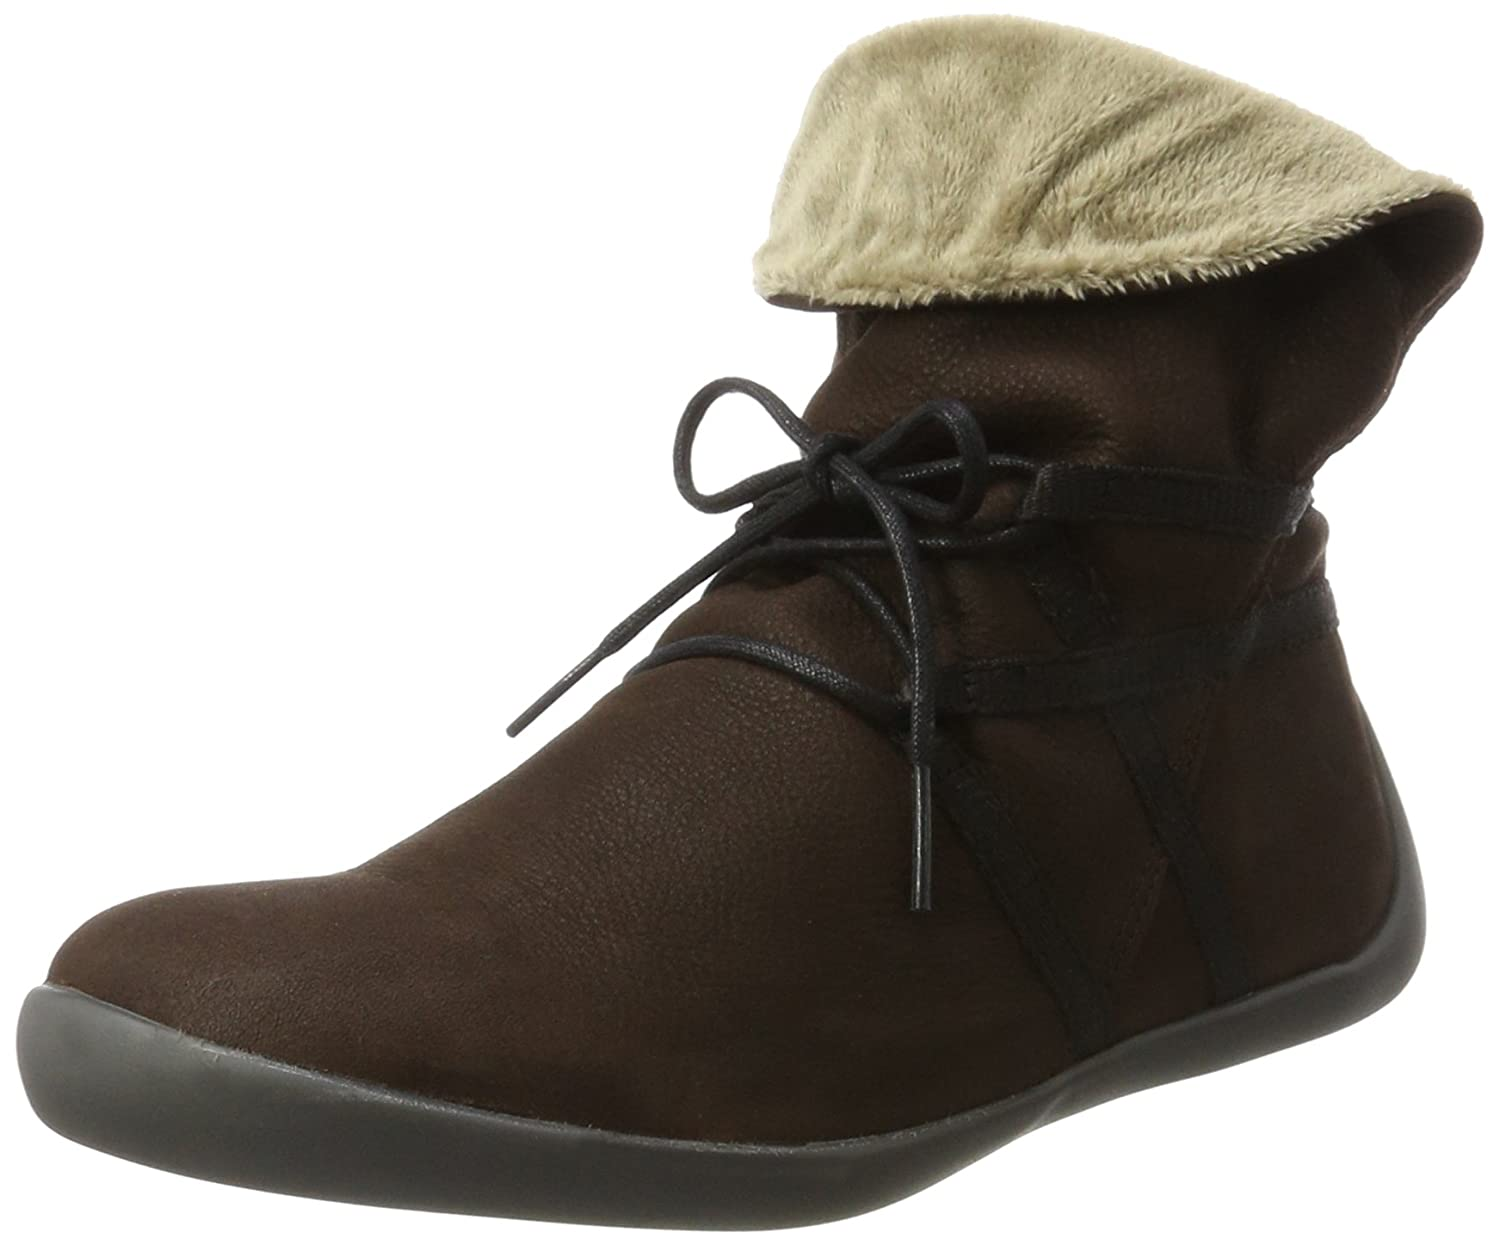 Softinos Nup410sof Brown Smooth, Nup410sof Bottes Souples Souples Femme Marron (Dk Brown 004) 16f9f34 - robotanarchy.space